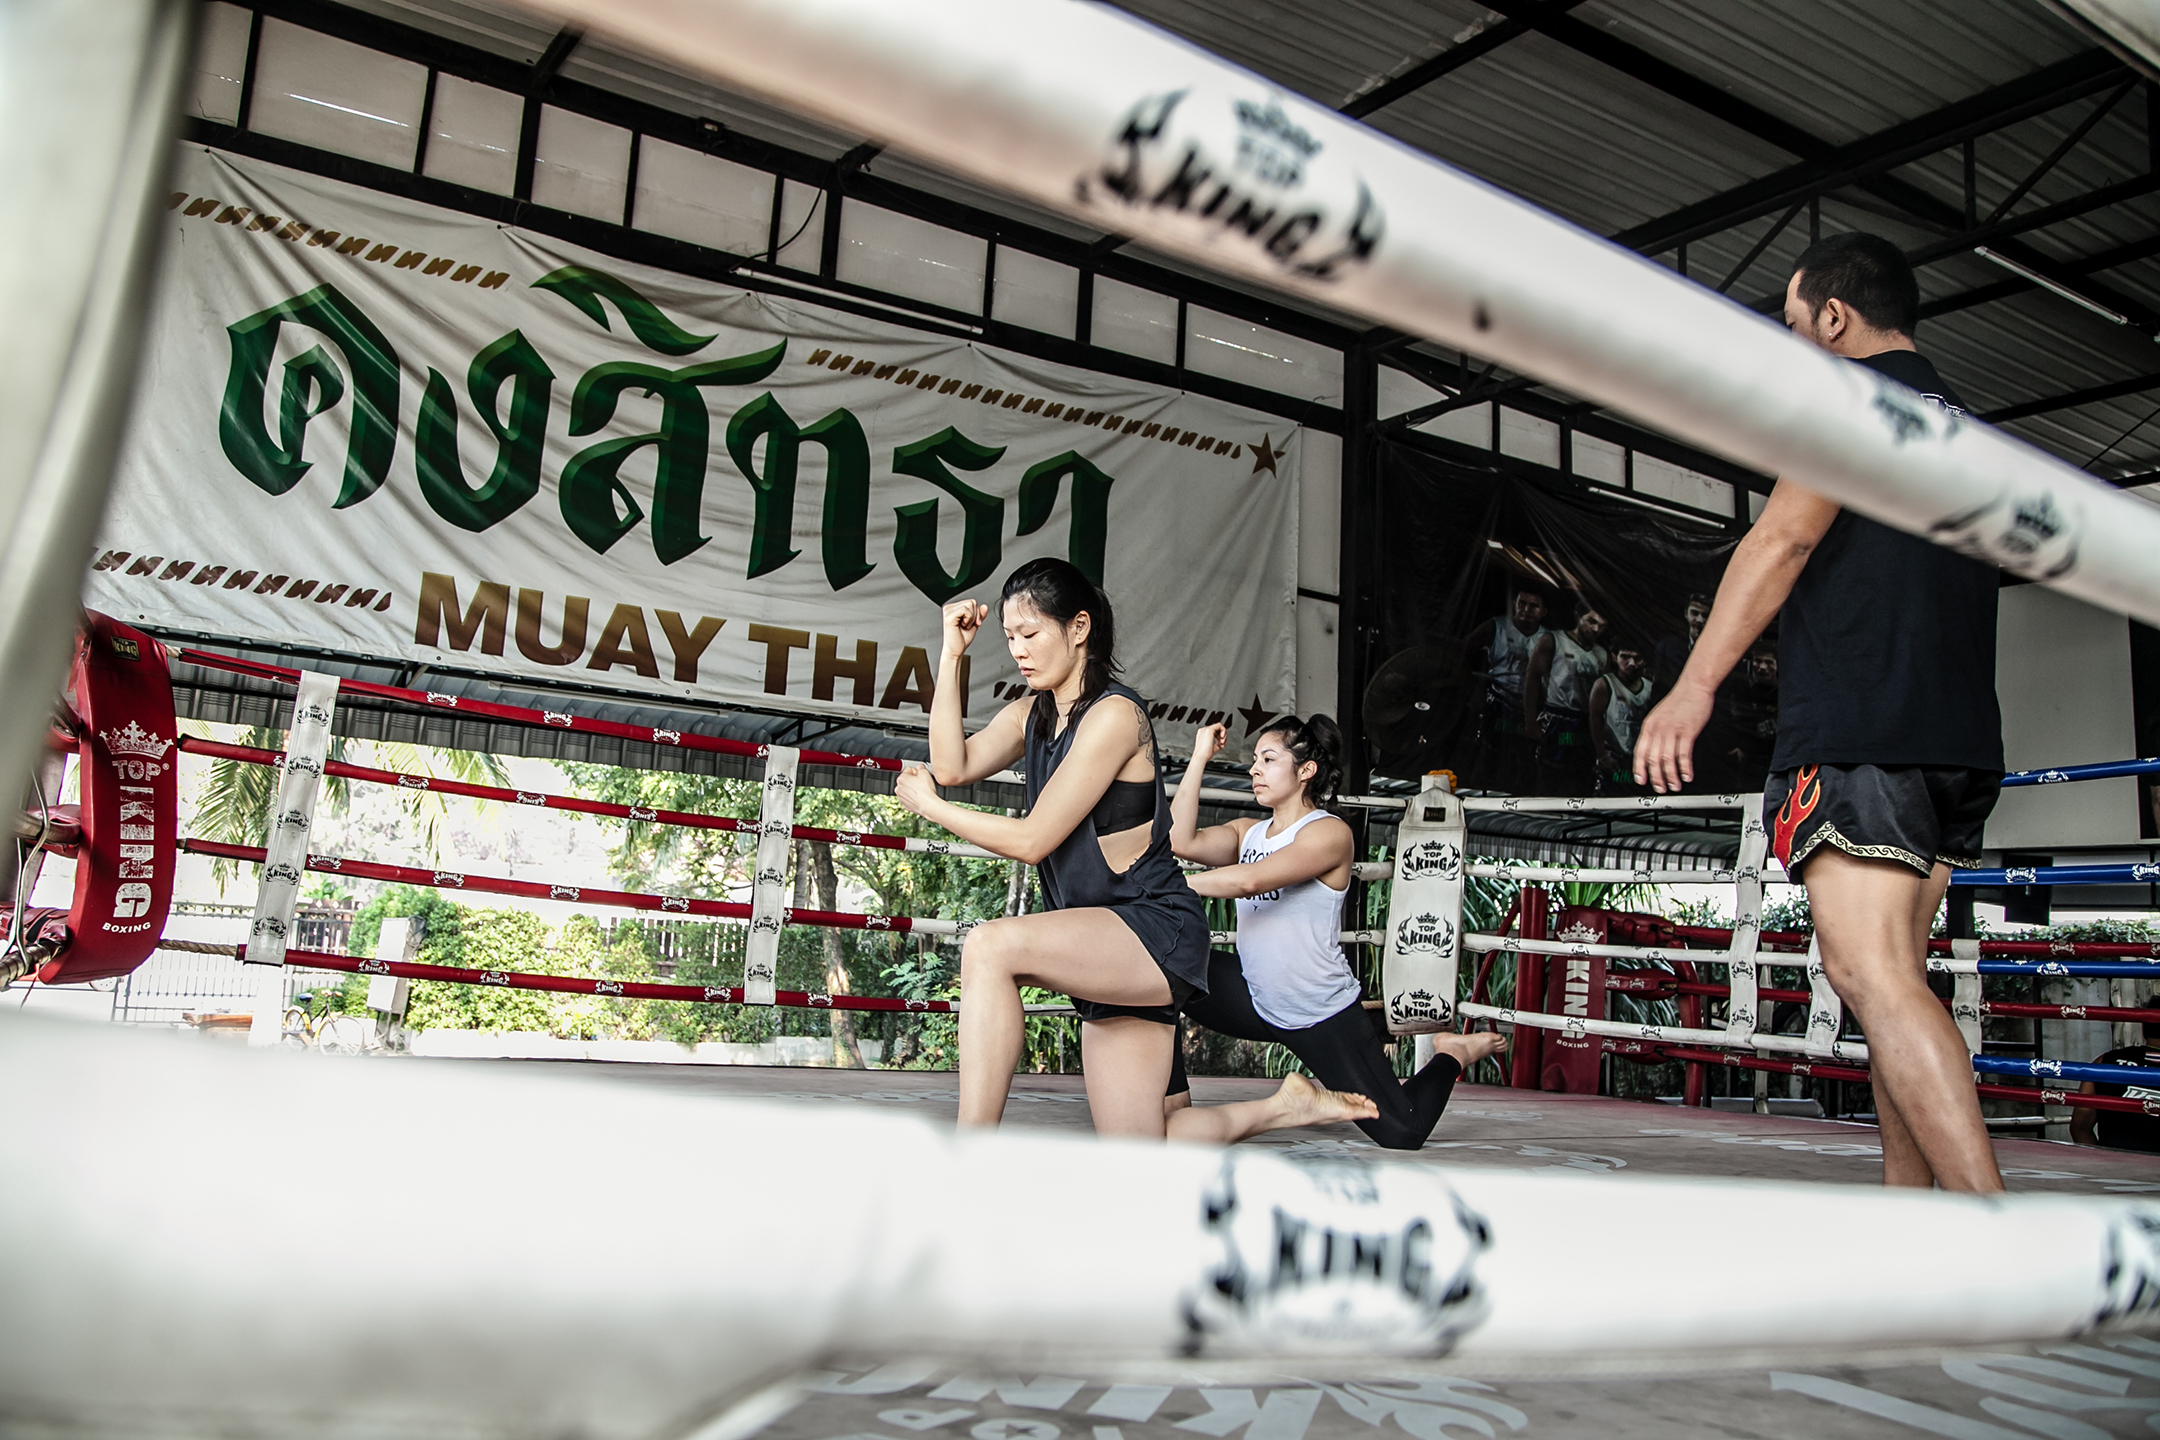 Image result for muay thai airbnb